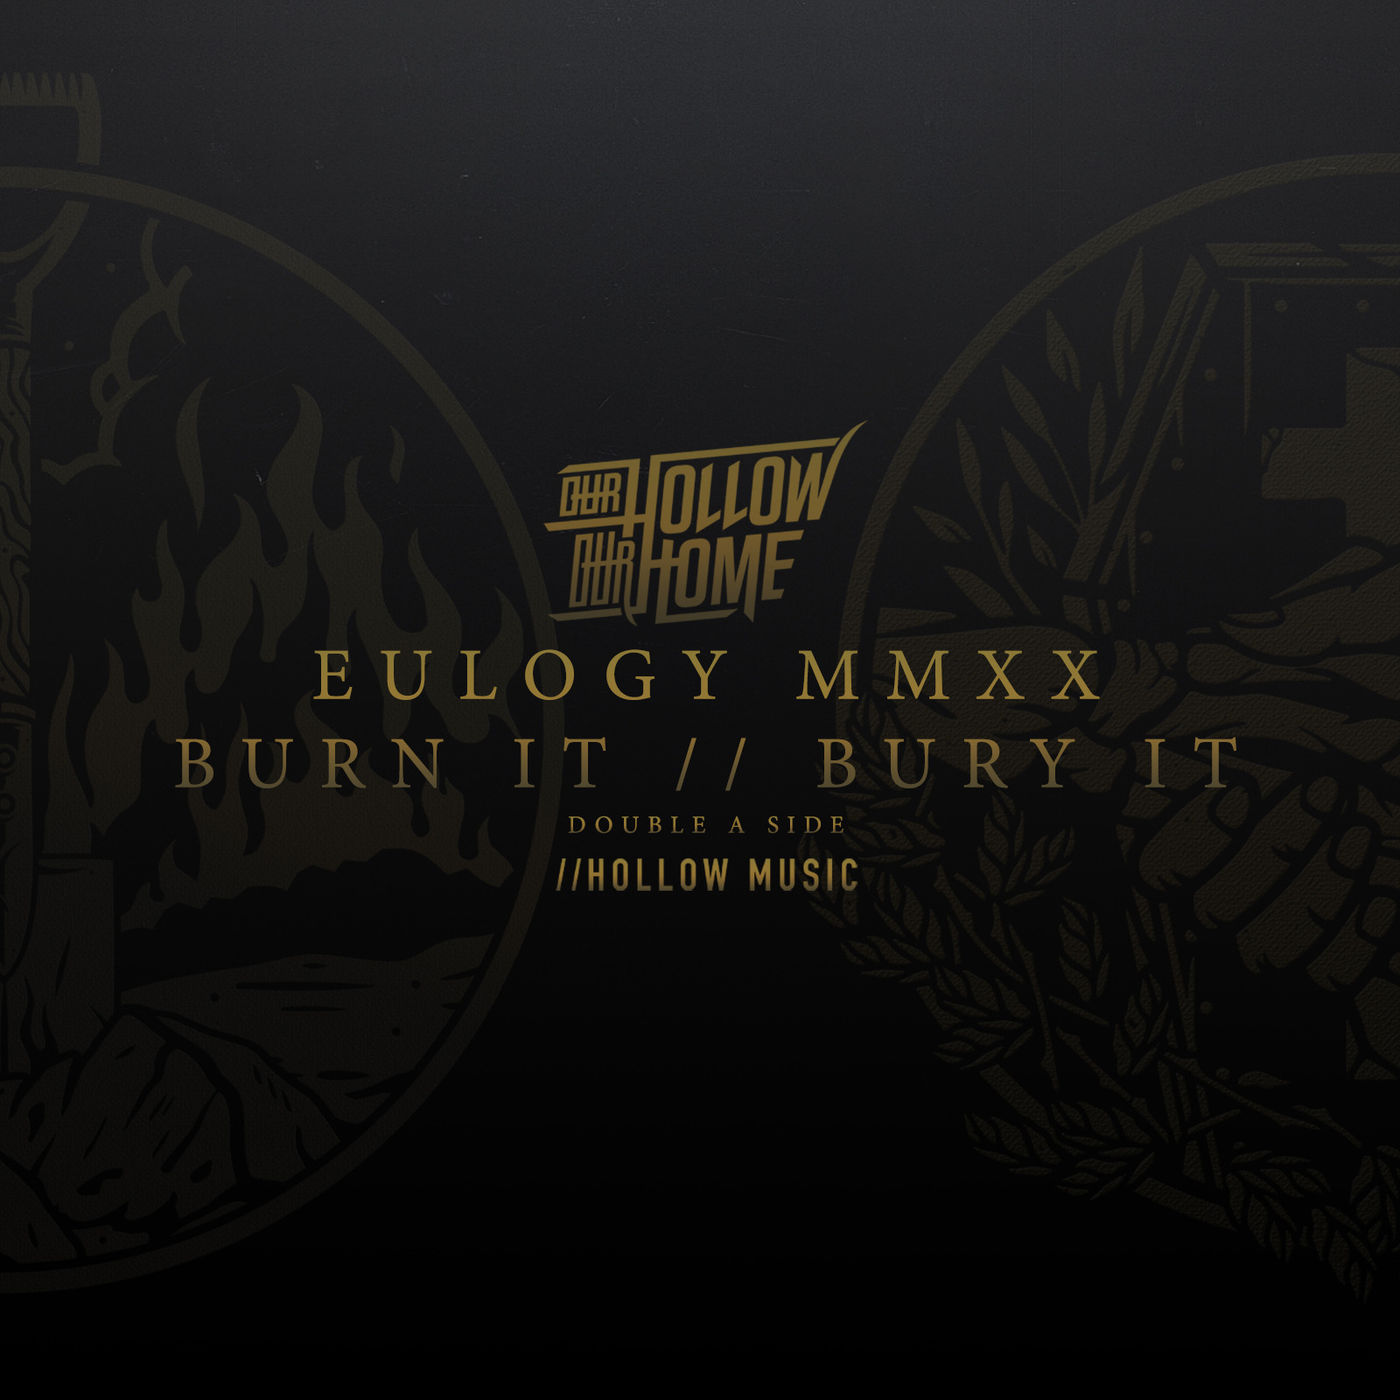 Our Hollow, Our Home - Eulogy MMXX - Burn It // Bury It Double A Side [EP] (2020)